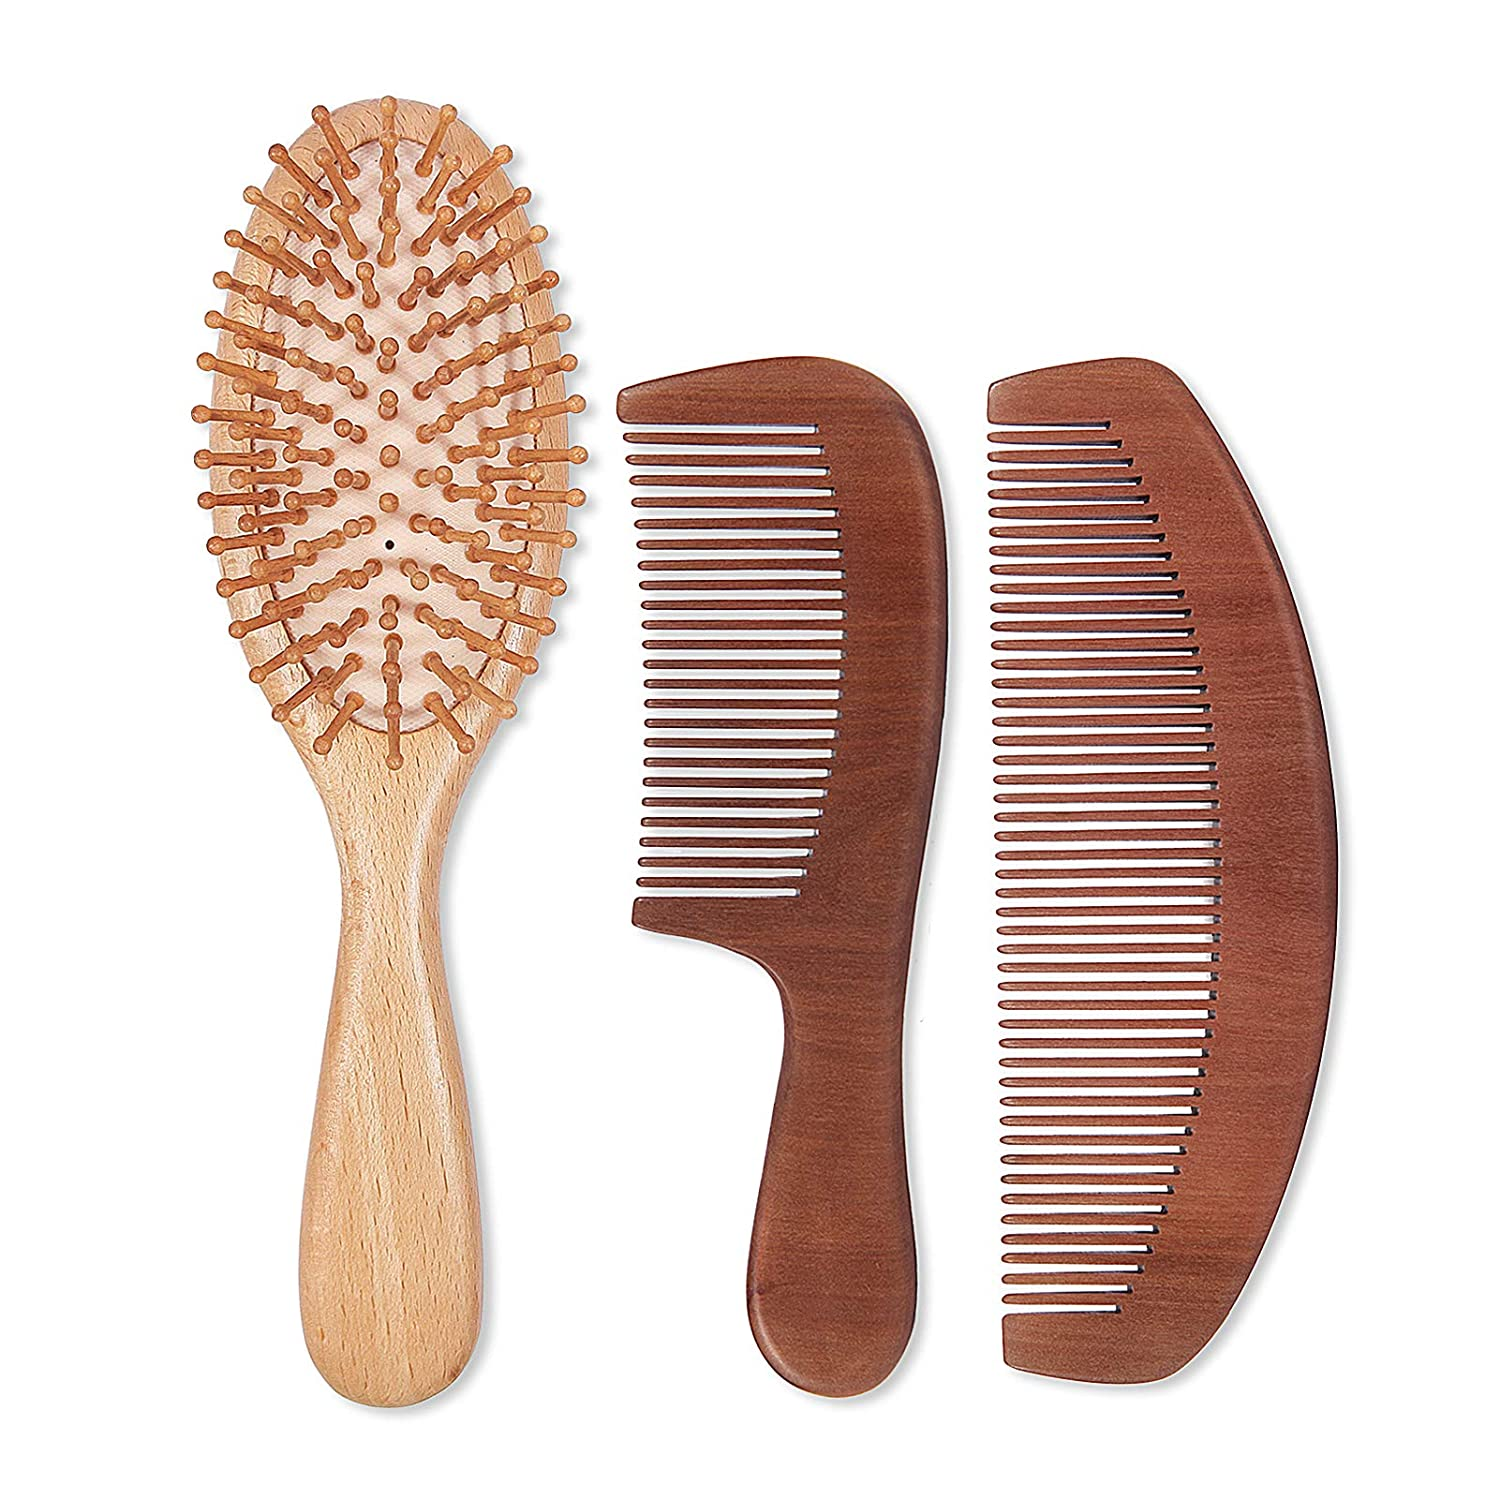 Natural Wood Hair Brush with Wooden Scalp Comb New Free unisex Shipping Bristles Massage